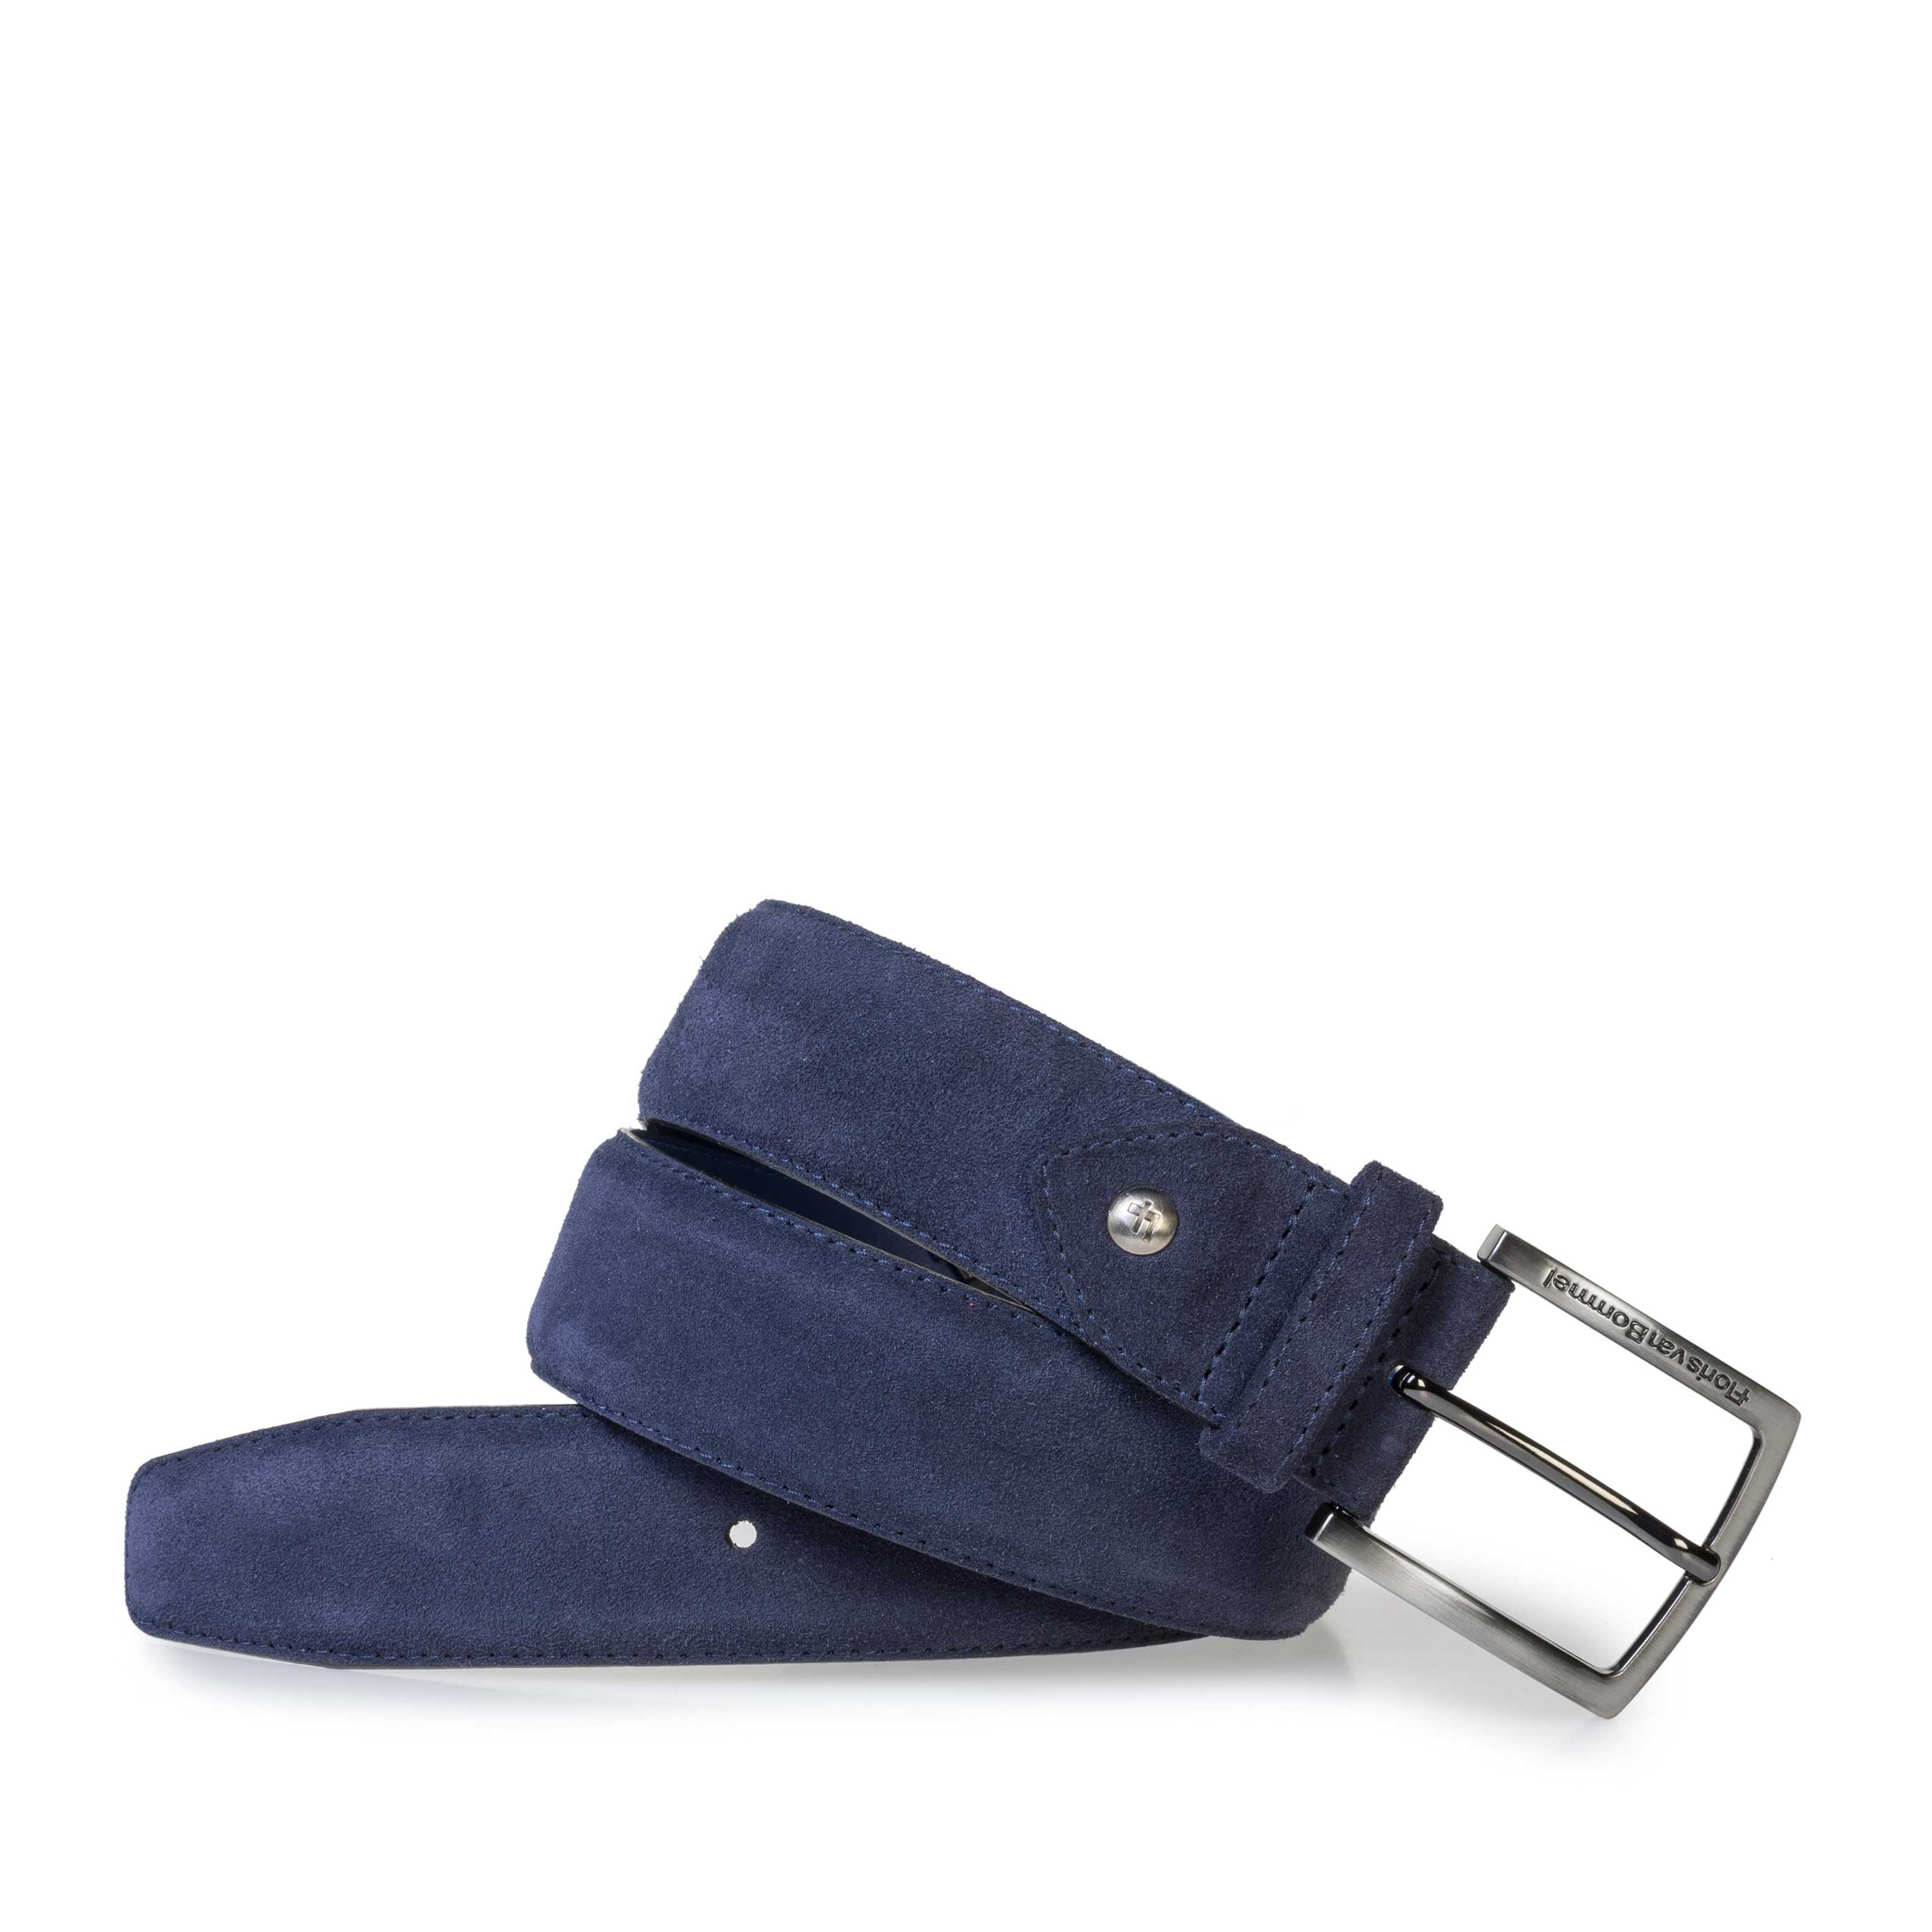 75202/45 - Dark blue suede leather belt